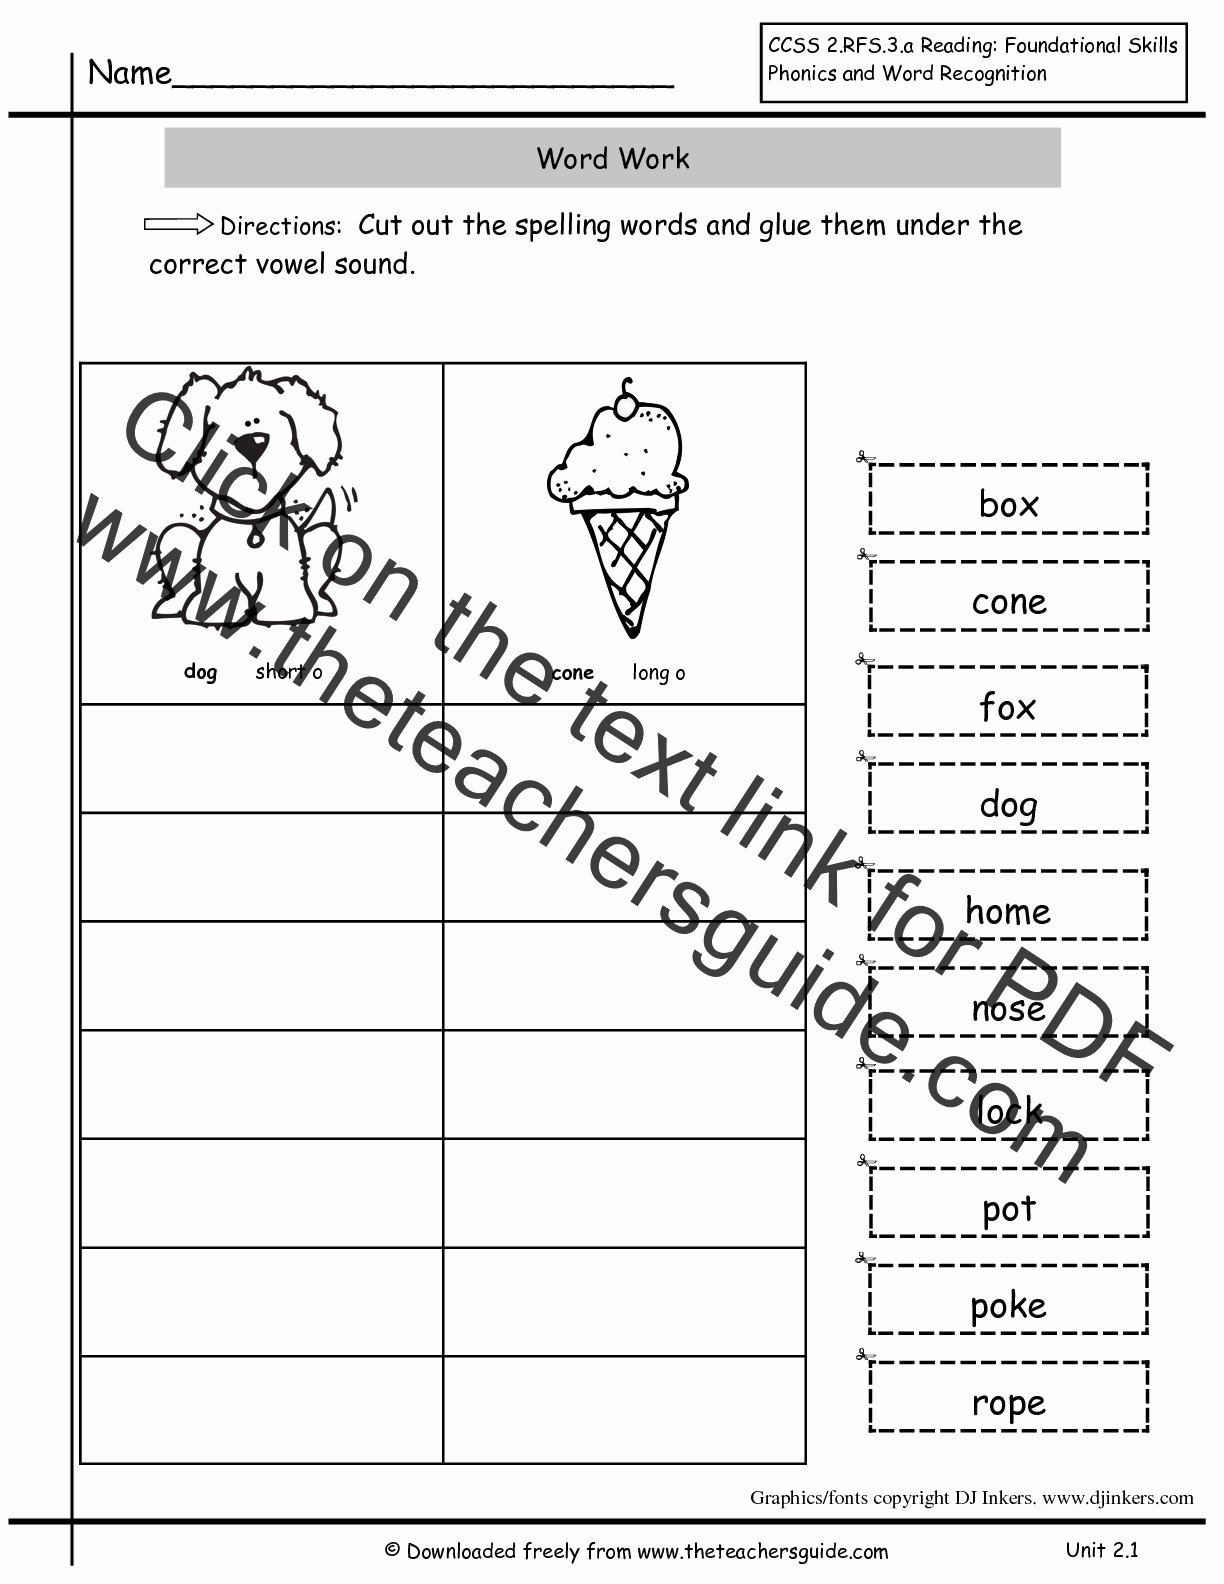 Inflected Endings Worksheets 2nd Grade Ideas Ing Inflected Worksheet